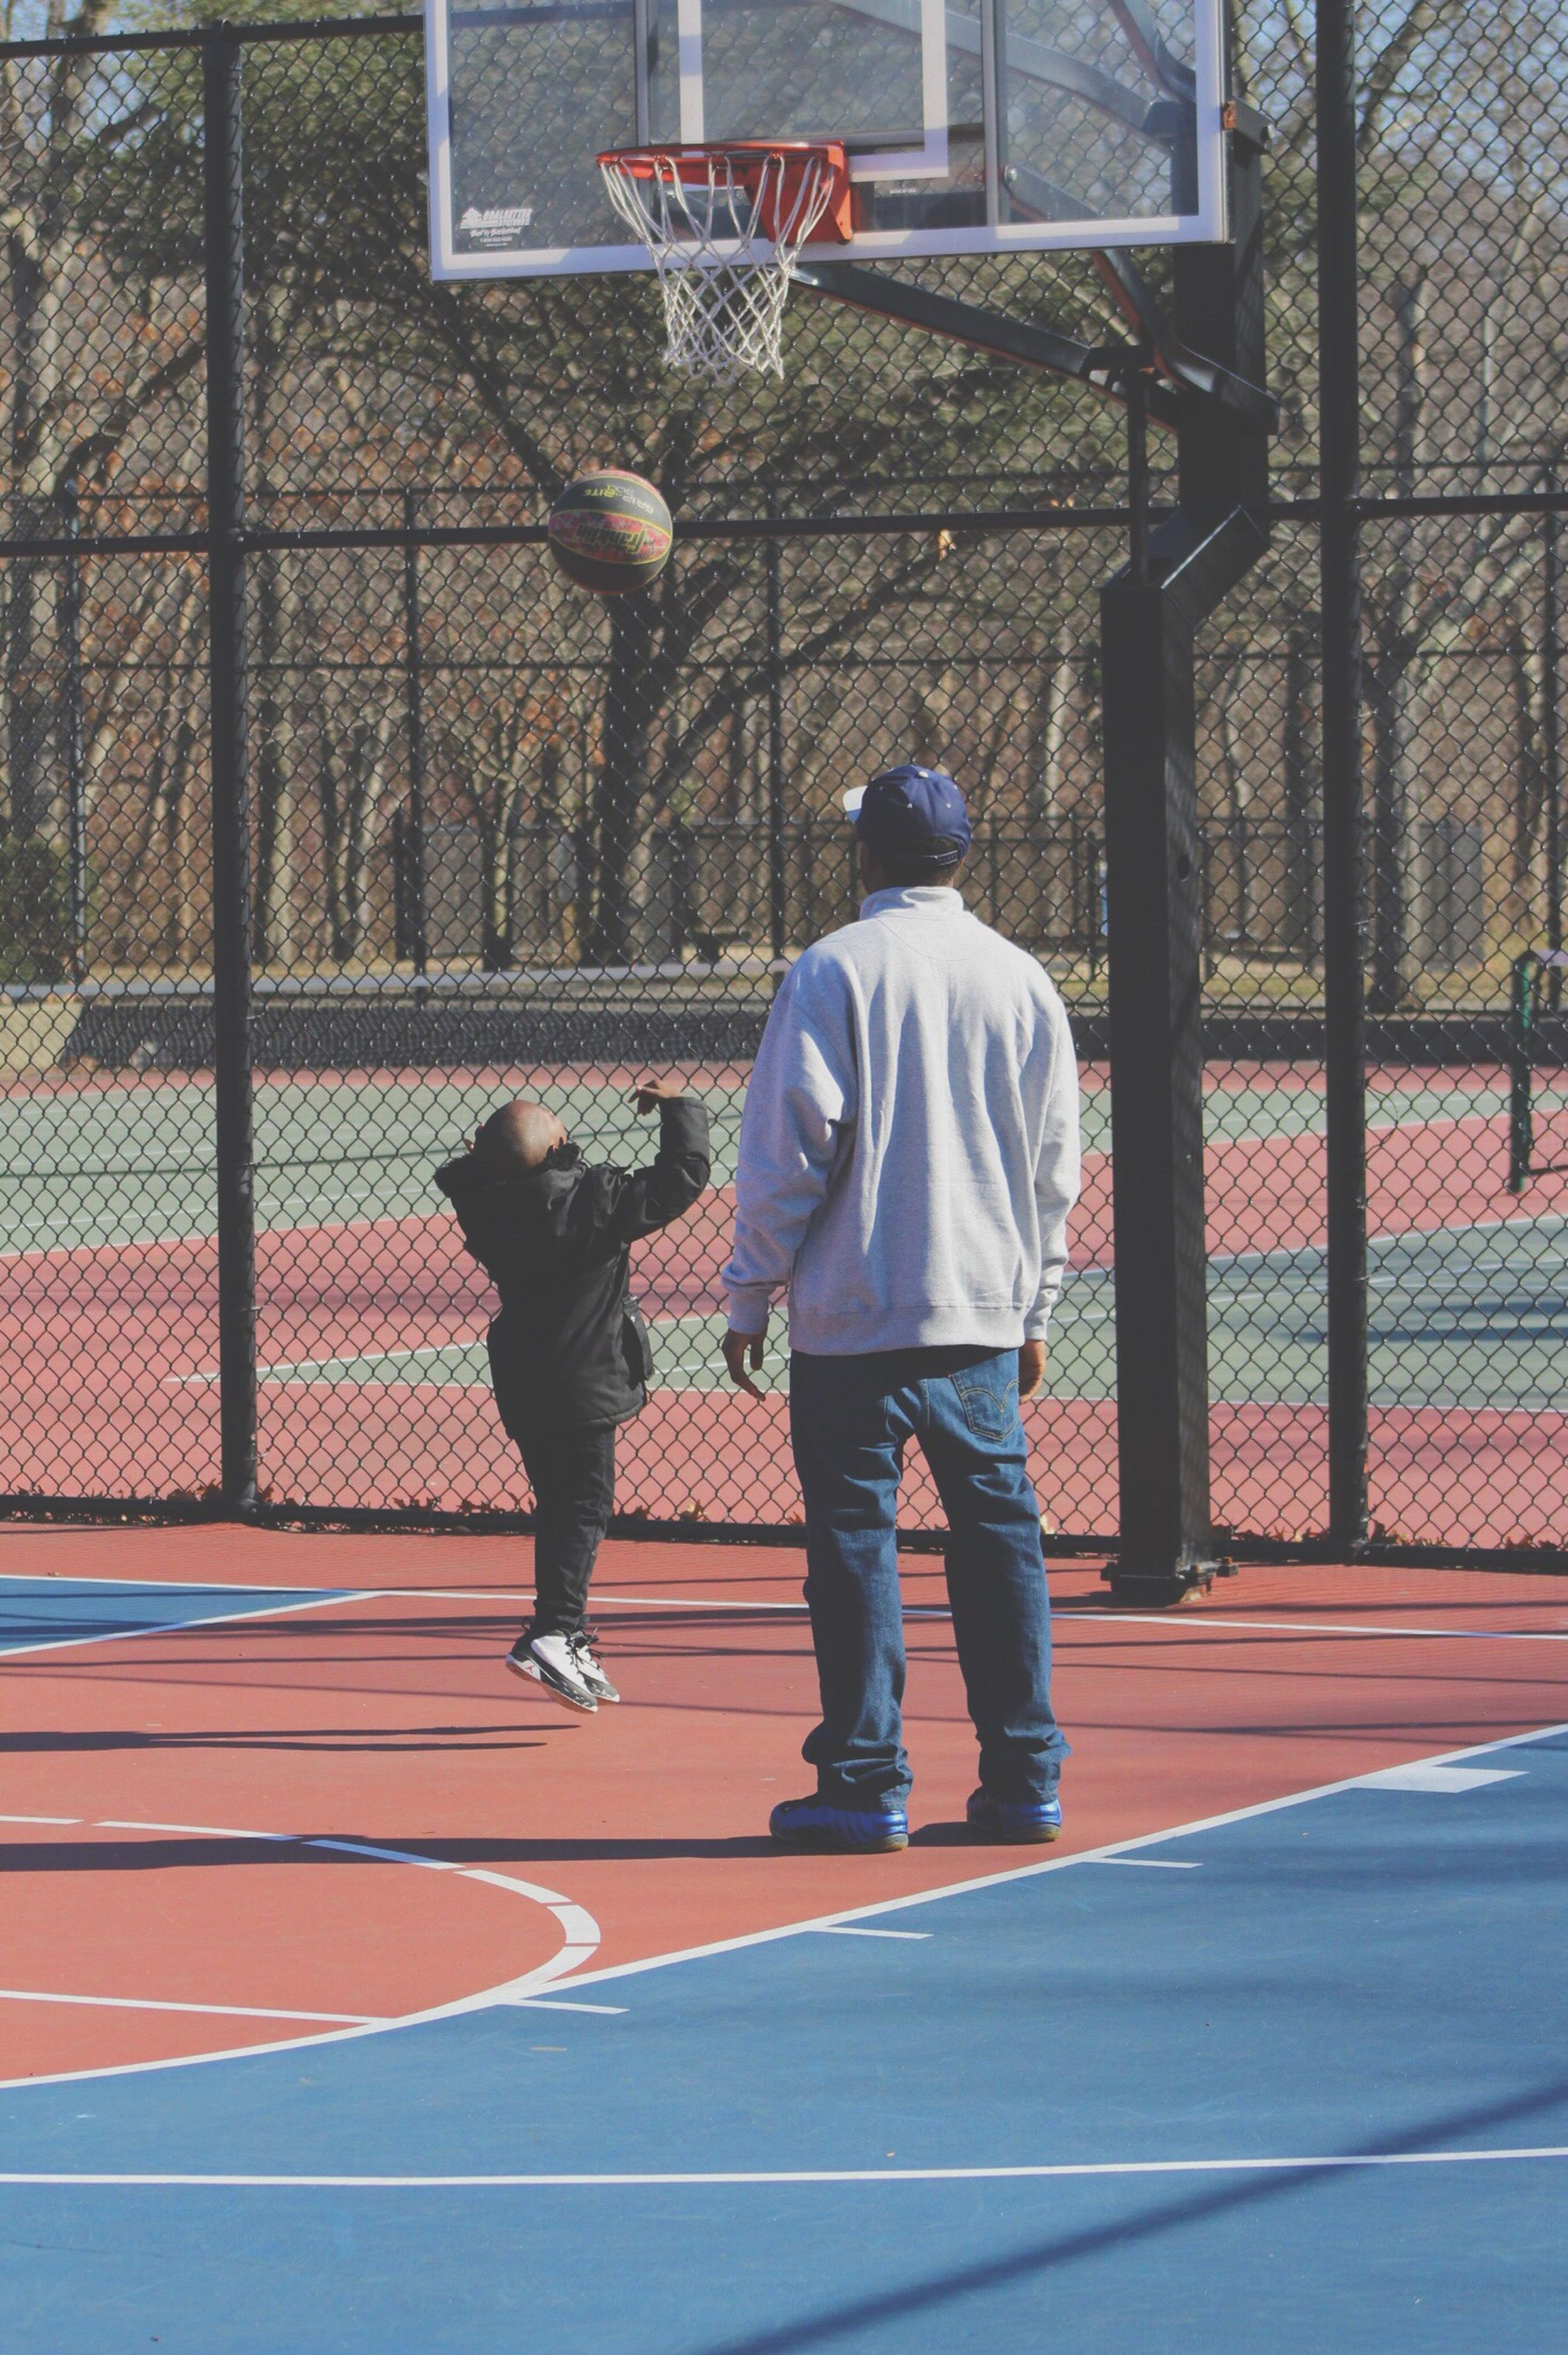 full length, two people, rear view, togetherness, leisure activity, court, outdoors, lifestyles, basketball - sport, day, men, sport, basketball hoop, real people, adult, people, taking a shot - sport